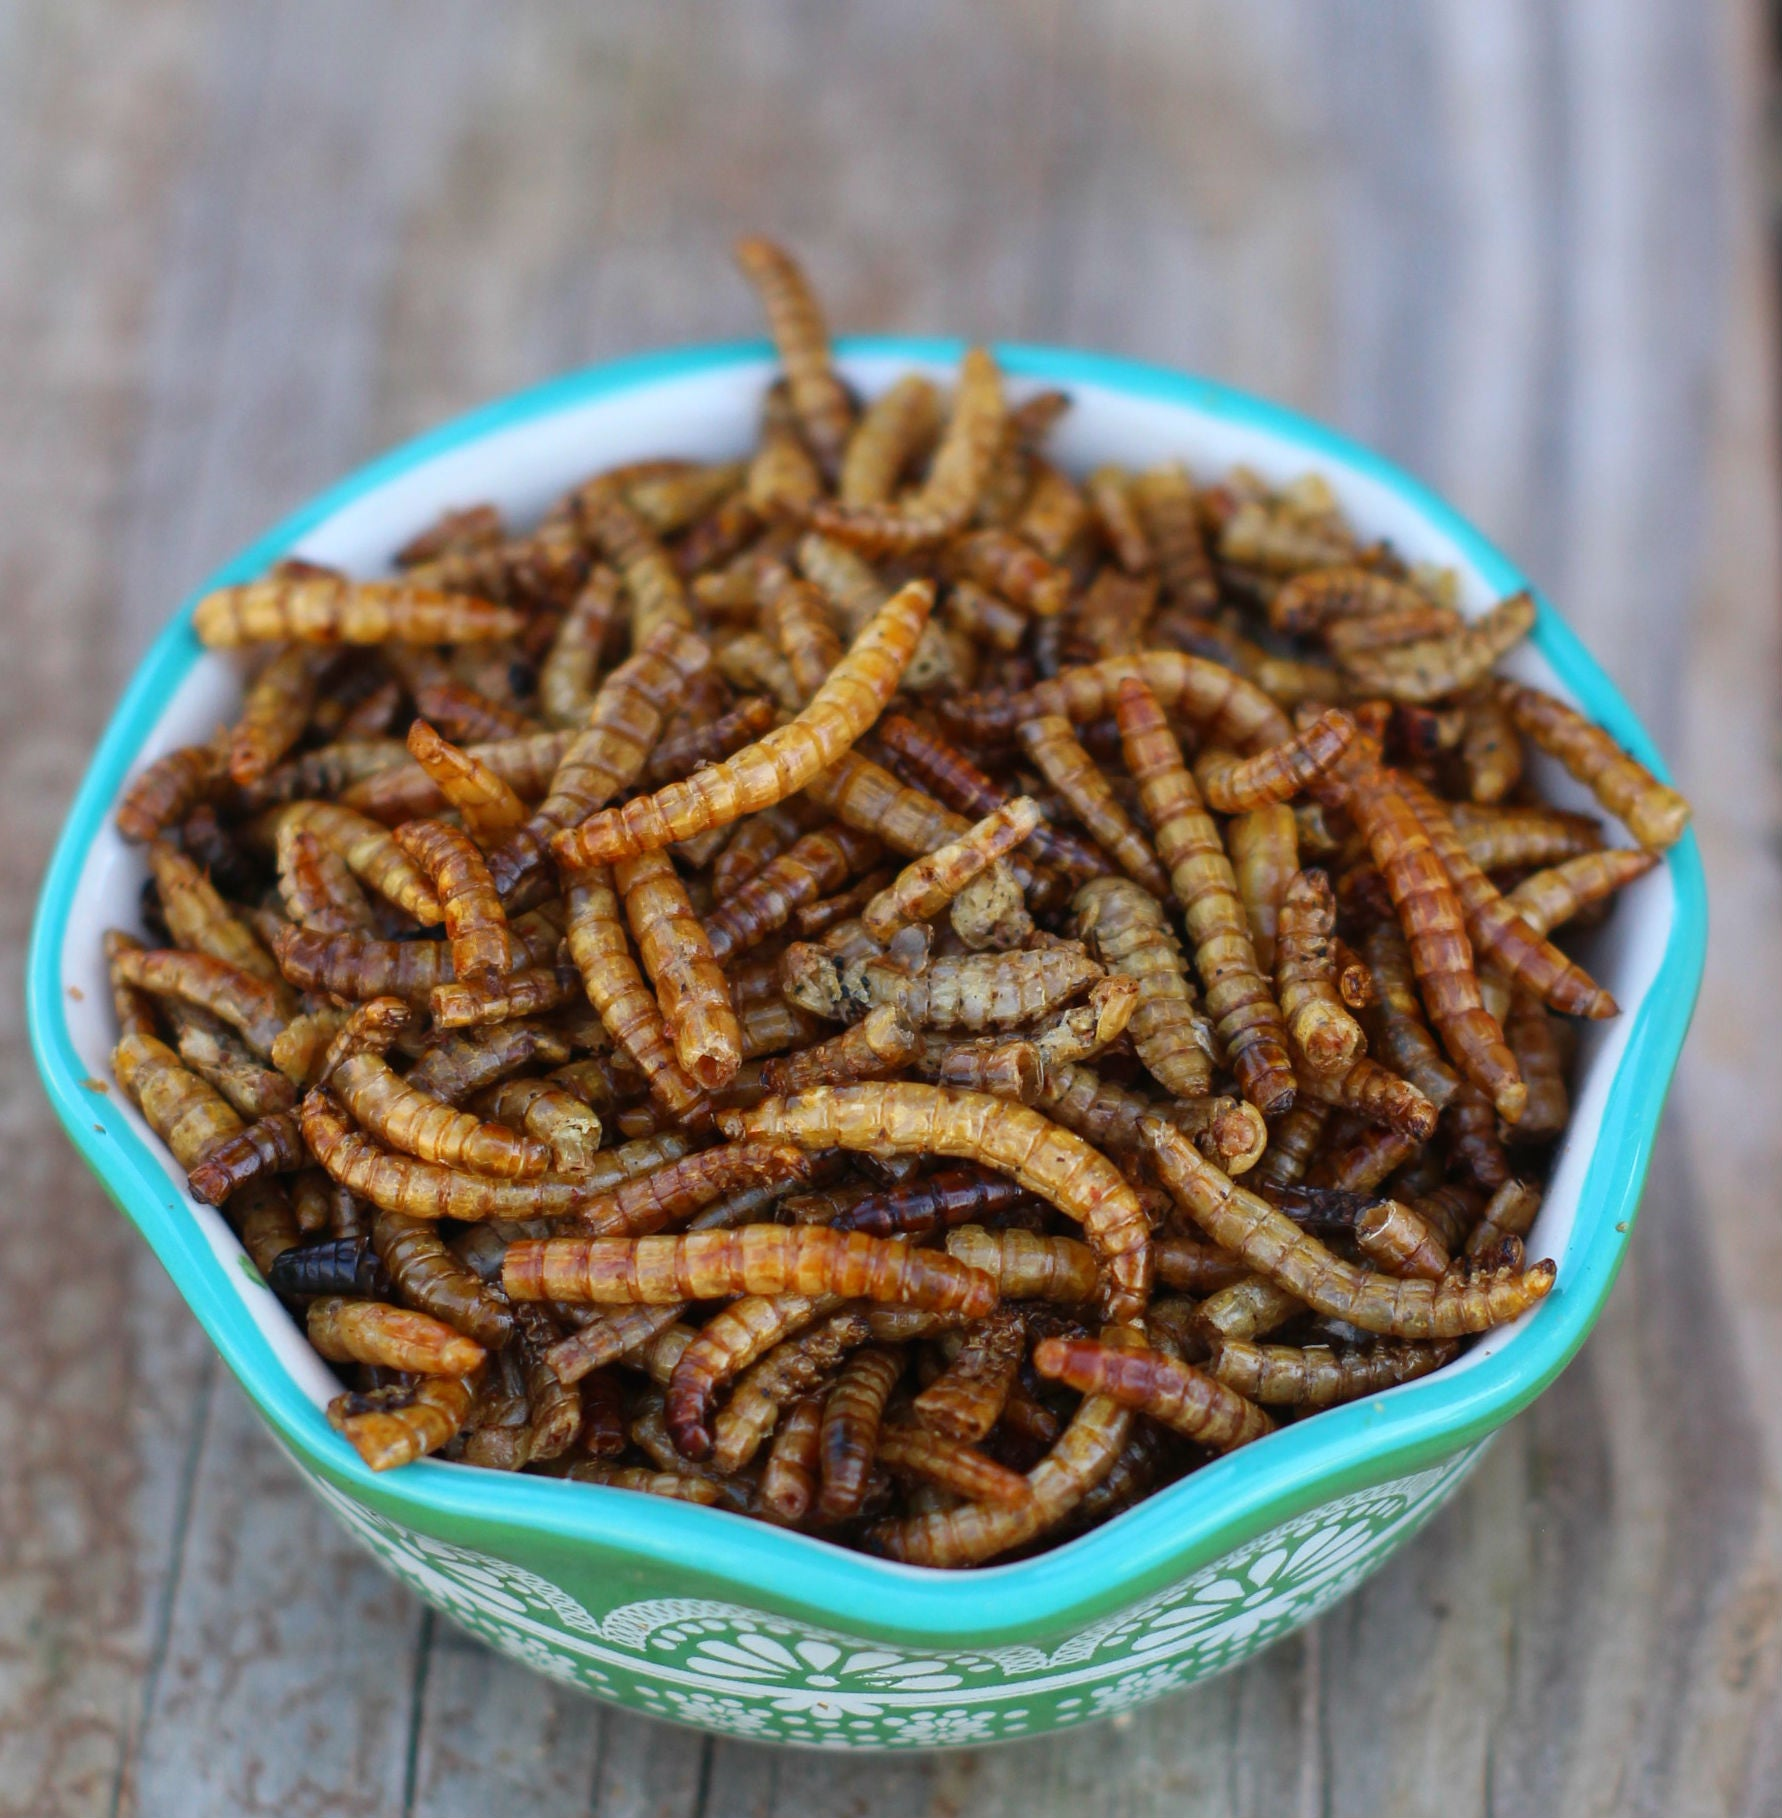 Mealworms -- LoveBugs For Hens (TM)